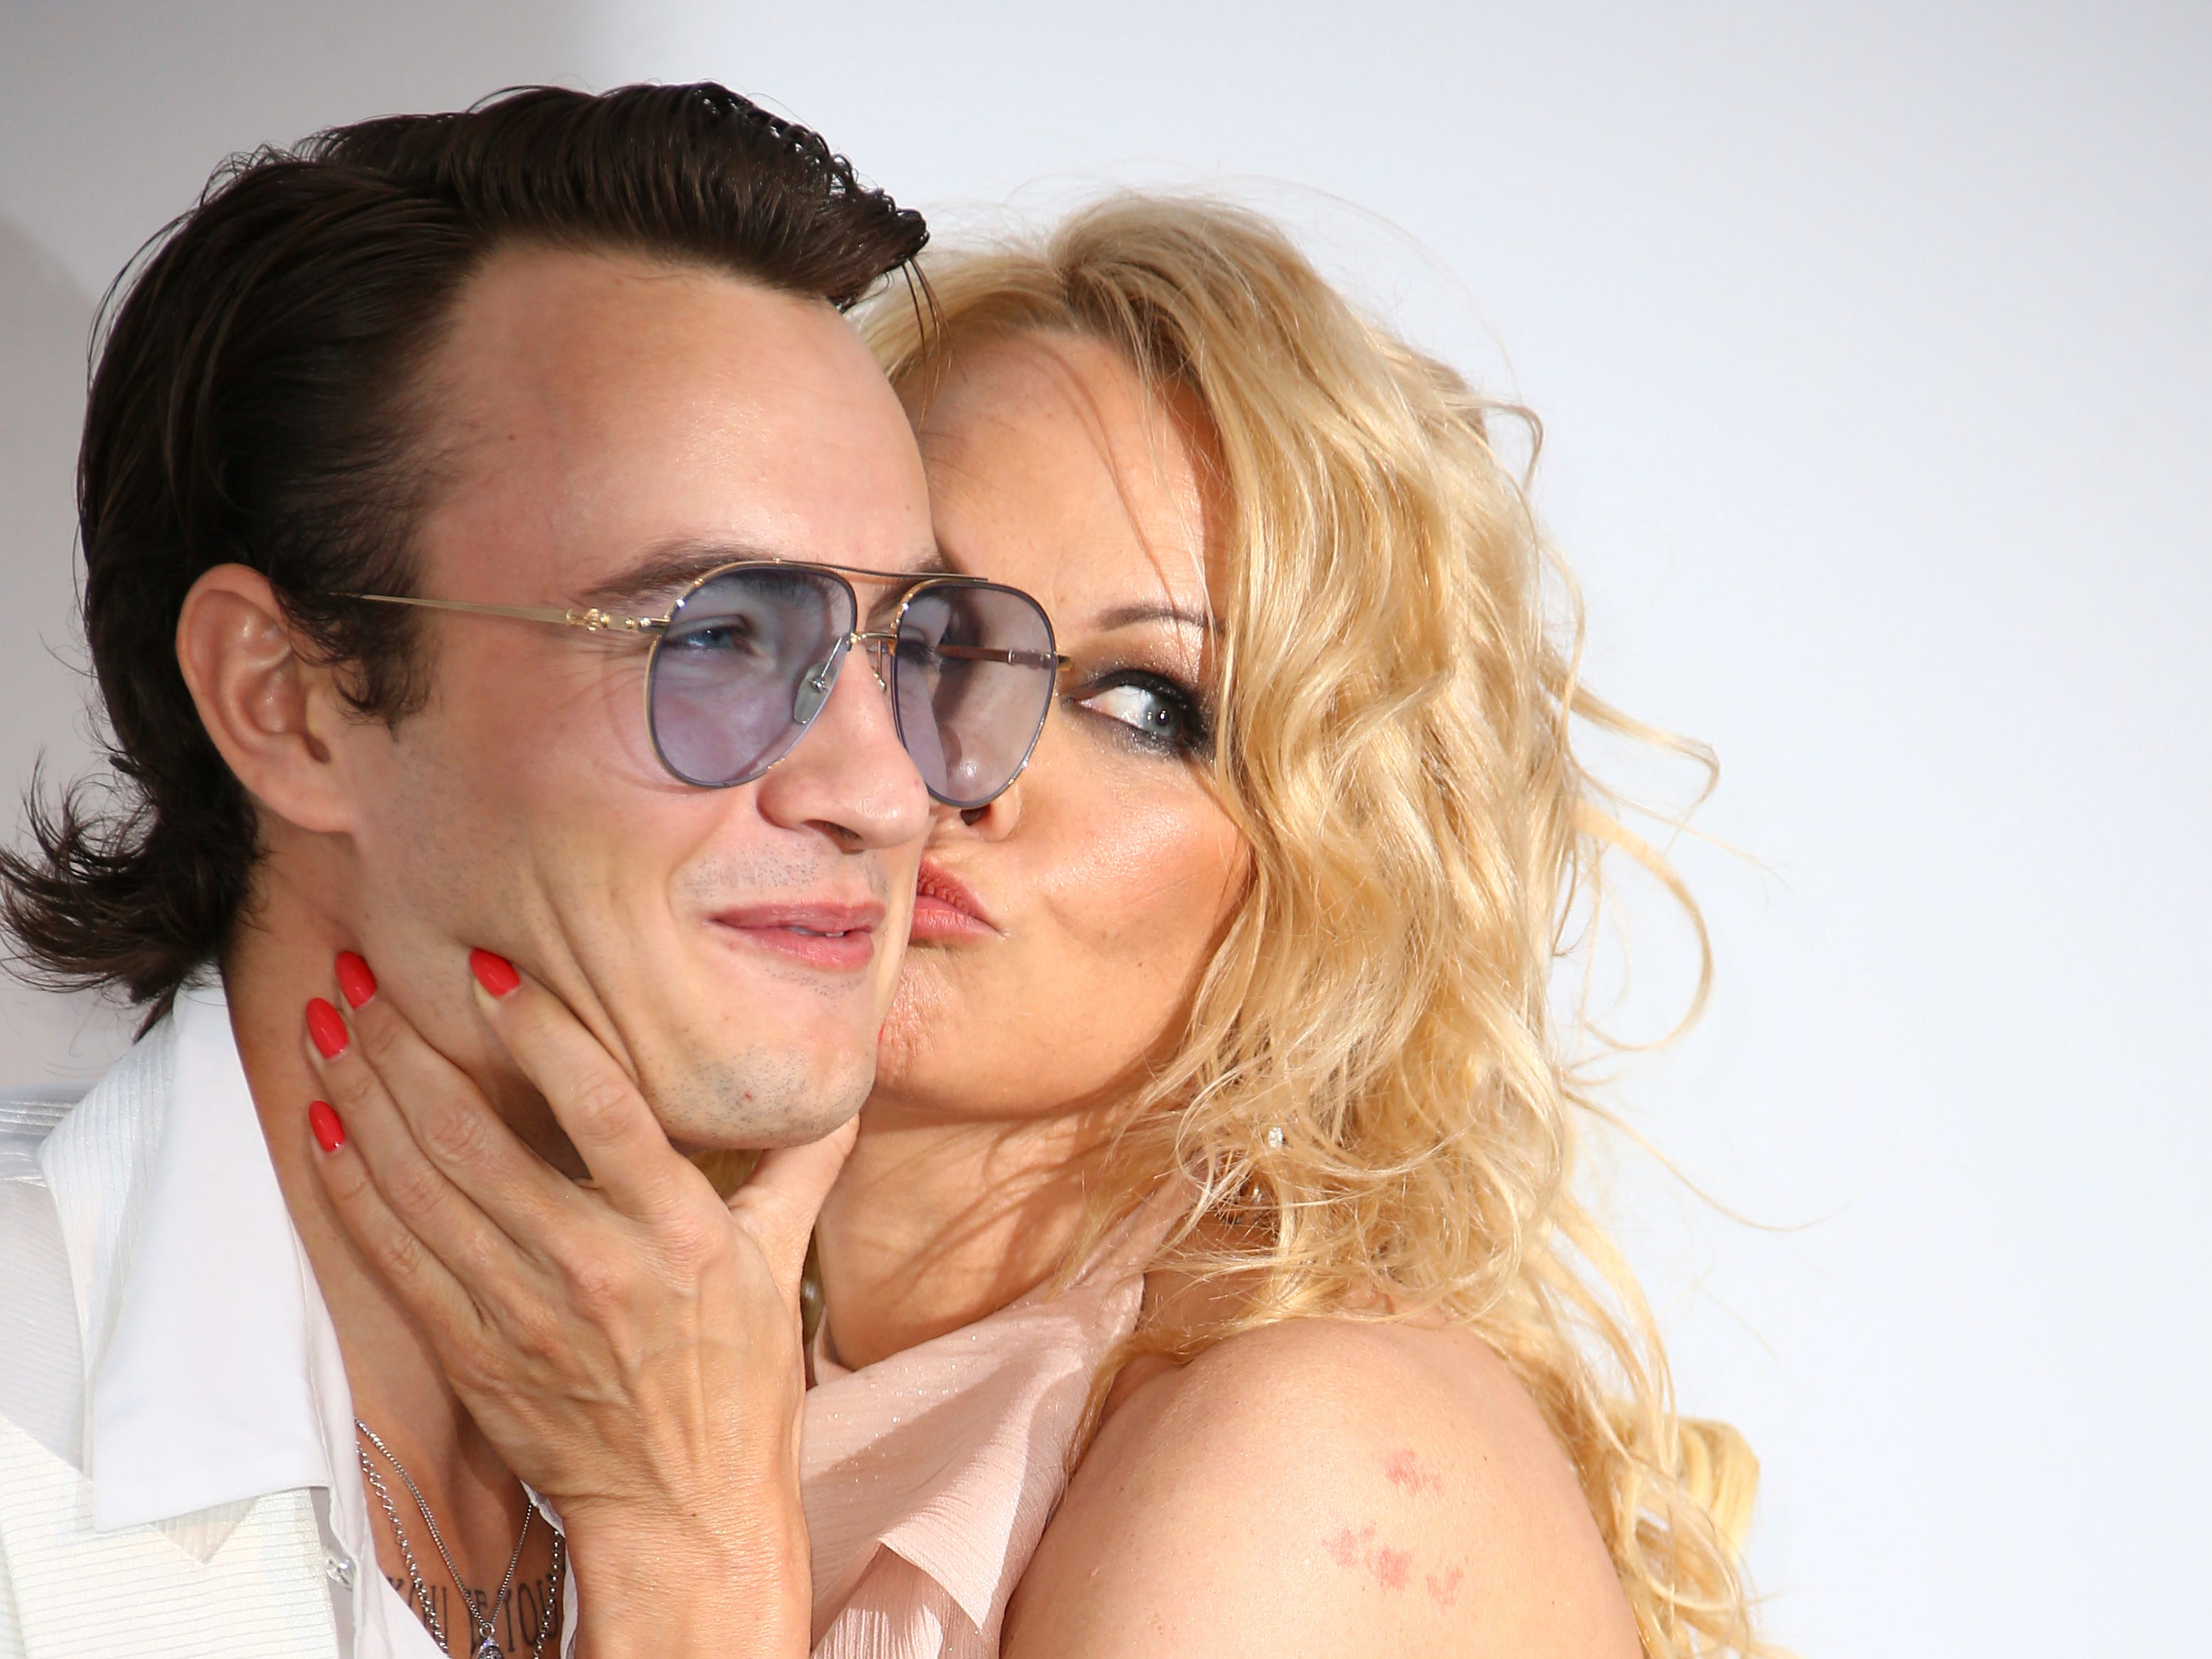 Actress Pamela Anderson, right, kisses her son Brandon Thomas Lee as they pose for photographers upon arrival at the amfAR, Cinema Against AIDS, benefit at the Hotel du Cap-Eden-Roc, during the 72nd international Cannes film festival, in Cap d'Antibes, southern France, Thursday, May 23, 2019. (Photo by Joel C Ryan/Invision/AP) ORG XMIT: LENT172